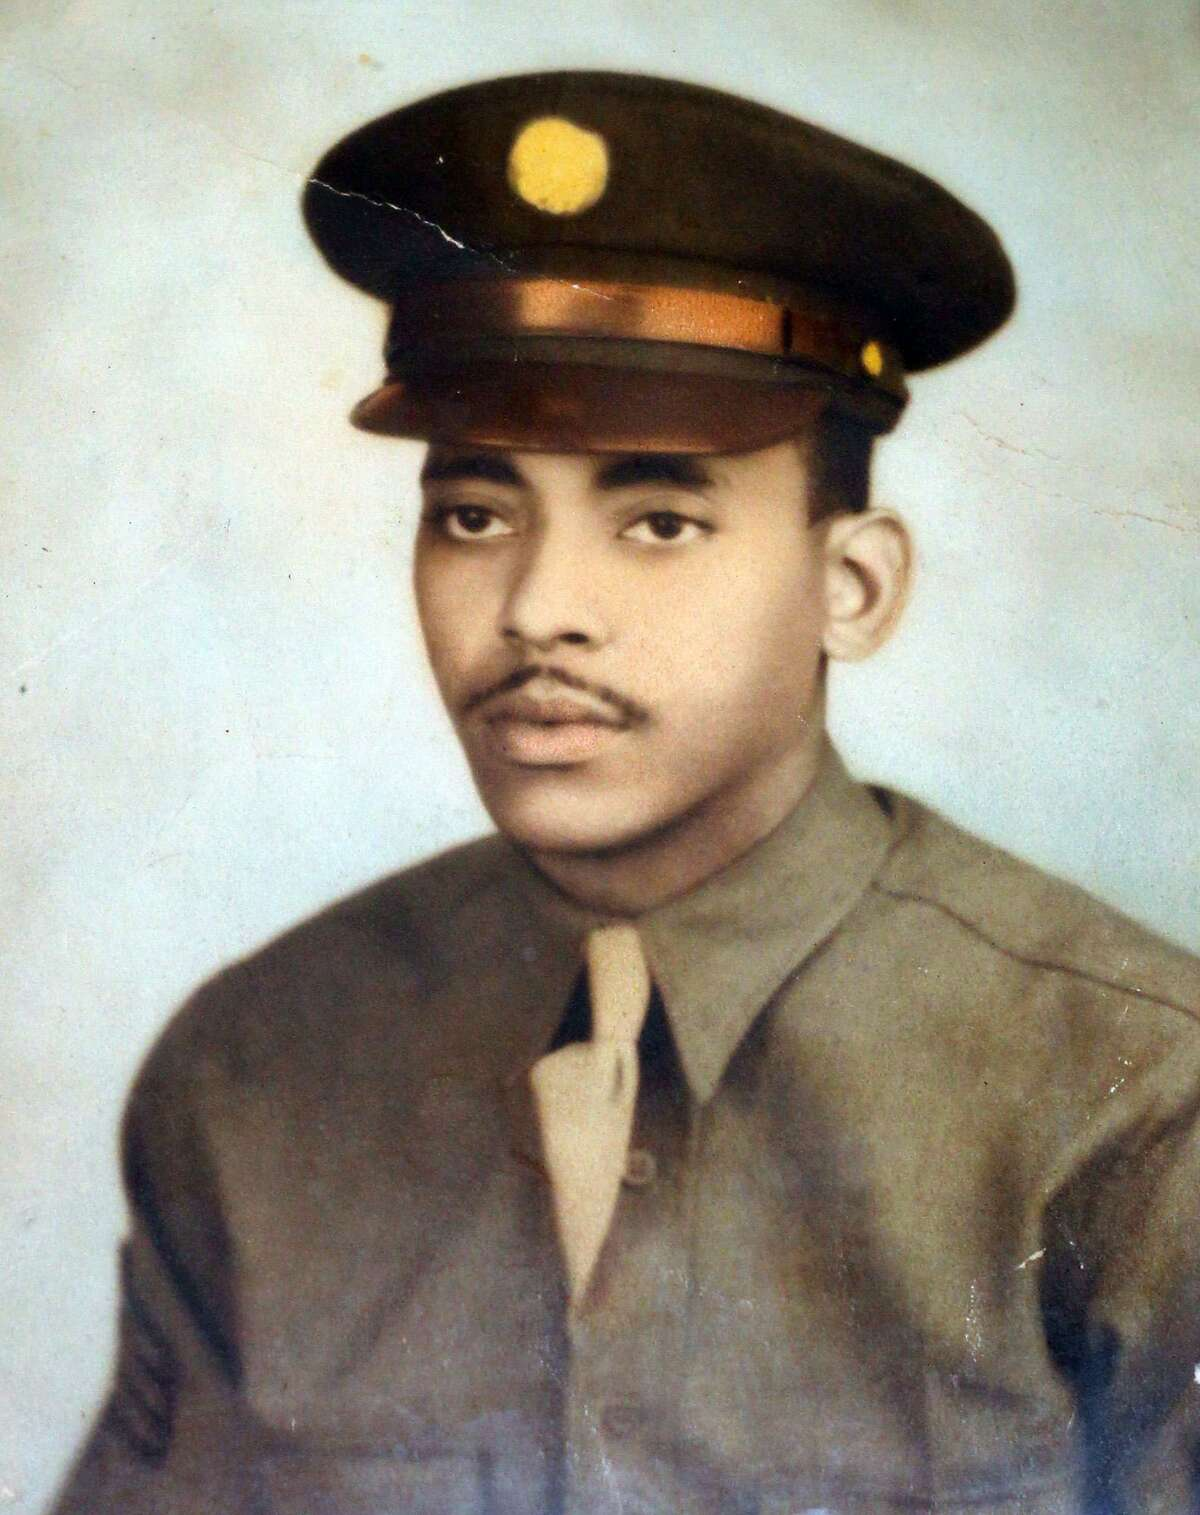 Courtesy photo of San Antonio native Thomas Ellis during his time serving with the Tuskegee Airmen from 1942 to 1945. Ellis was an administrative clerk assigned to the 332nd Fighter Group that fought the Germans over Europe protecting American bombers in red-tailed P-51 Mustangs. Kin Man Hui/kmhui@express-news.net